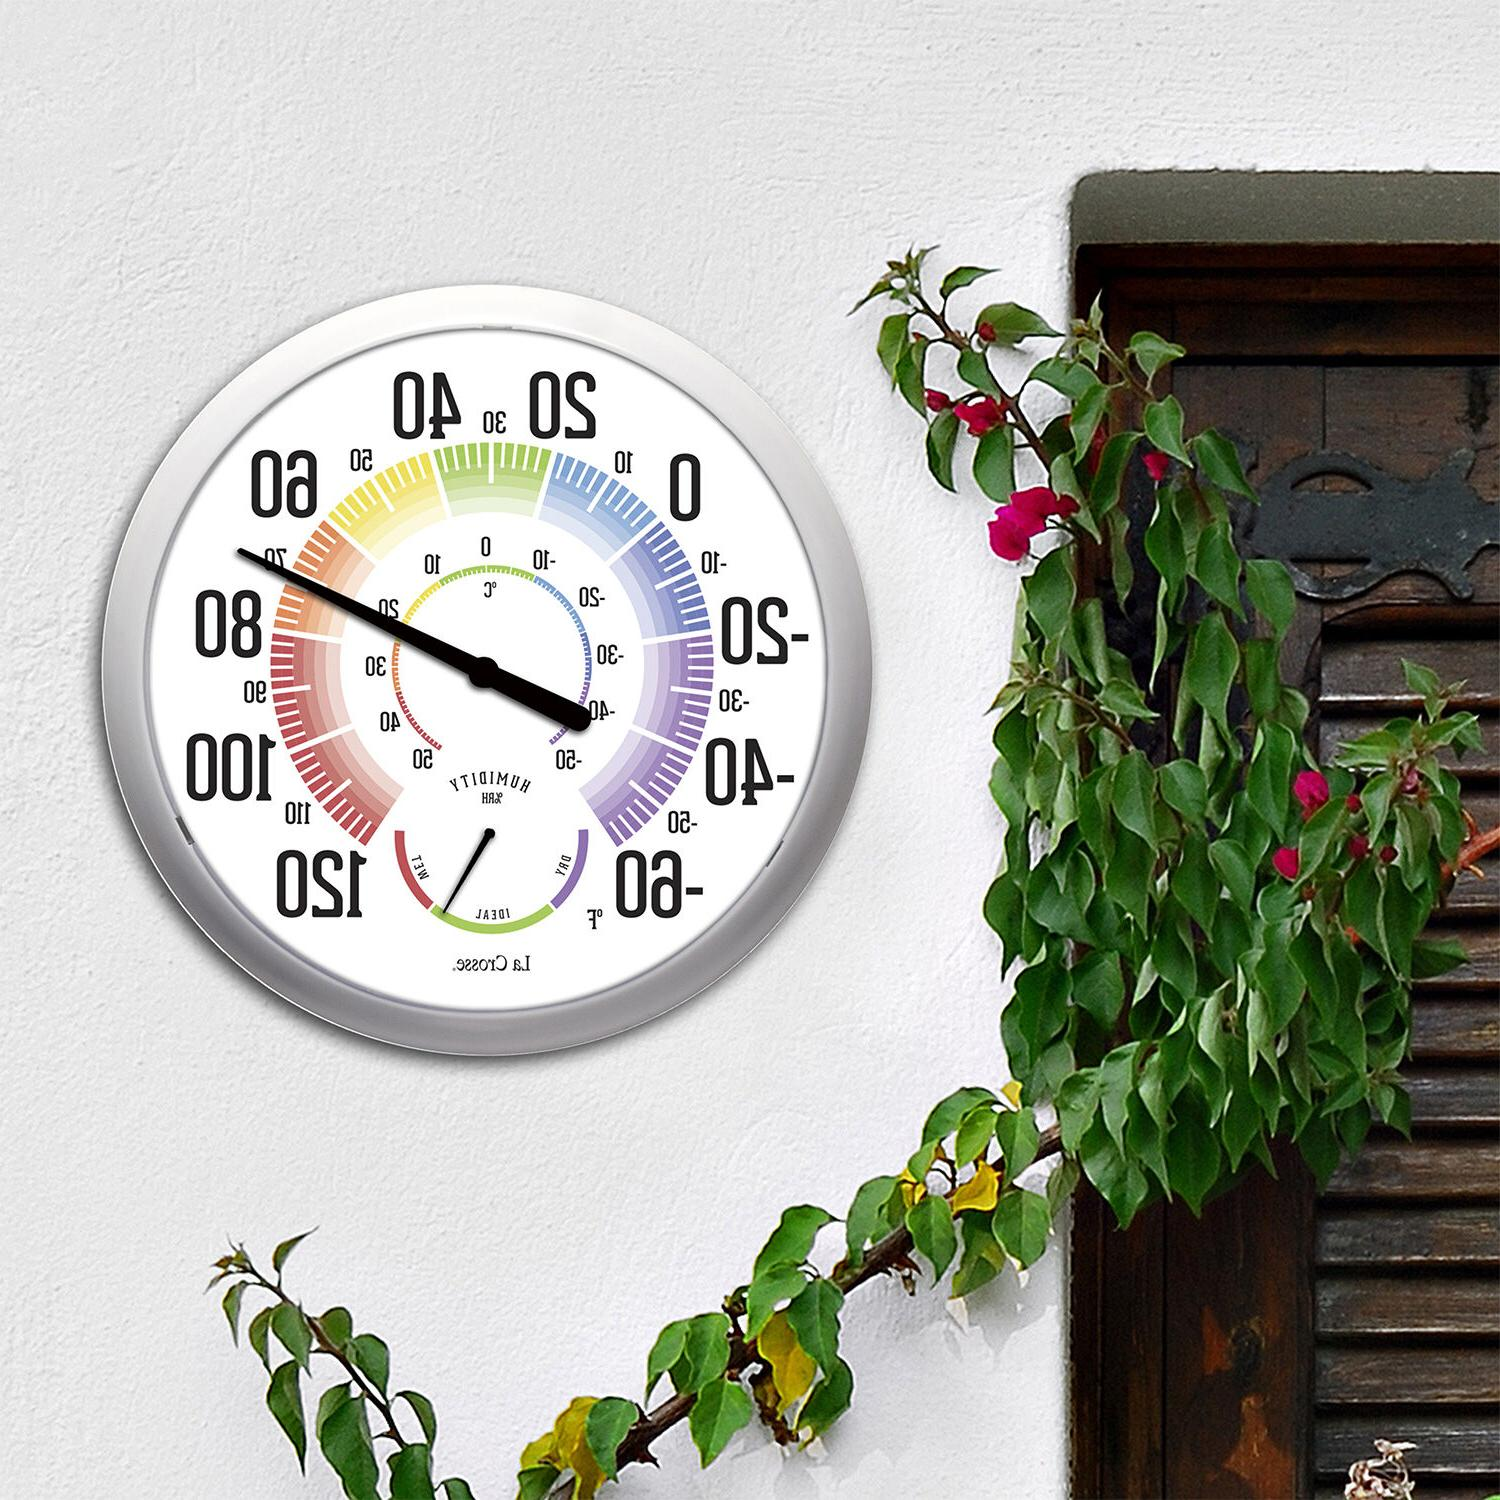 104-1534A La Crosse Round Dial Thermometer with